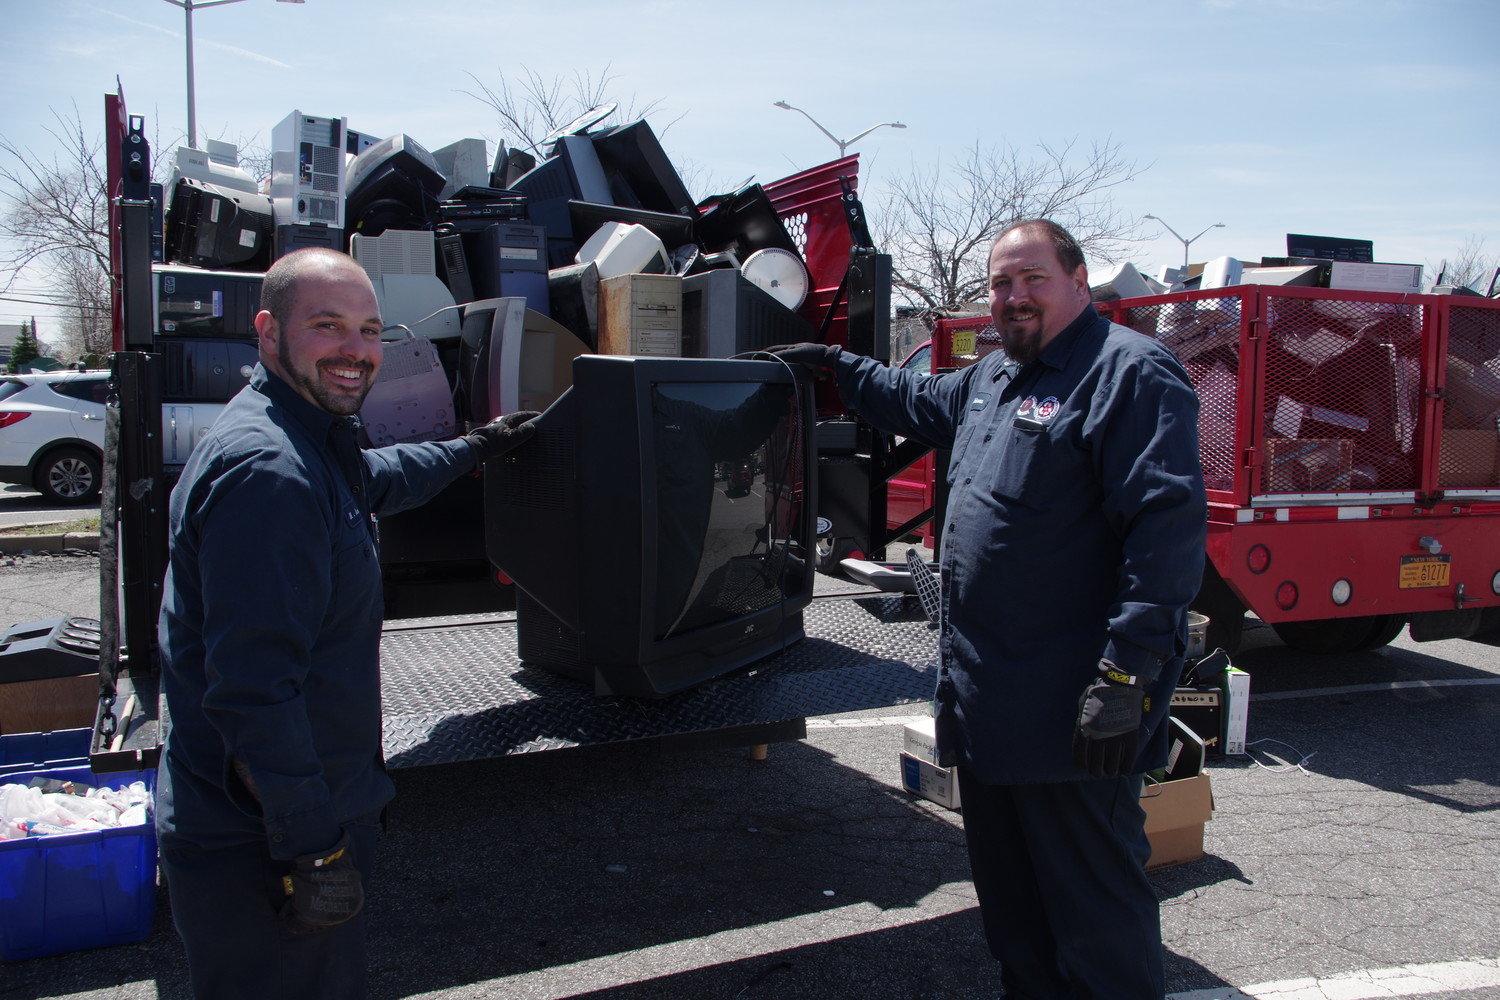 Sanitation workers David Johnson, left, and Matthew Amato loaded an old CRT television to be recycled.